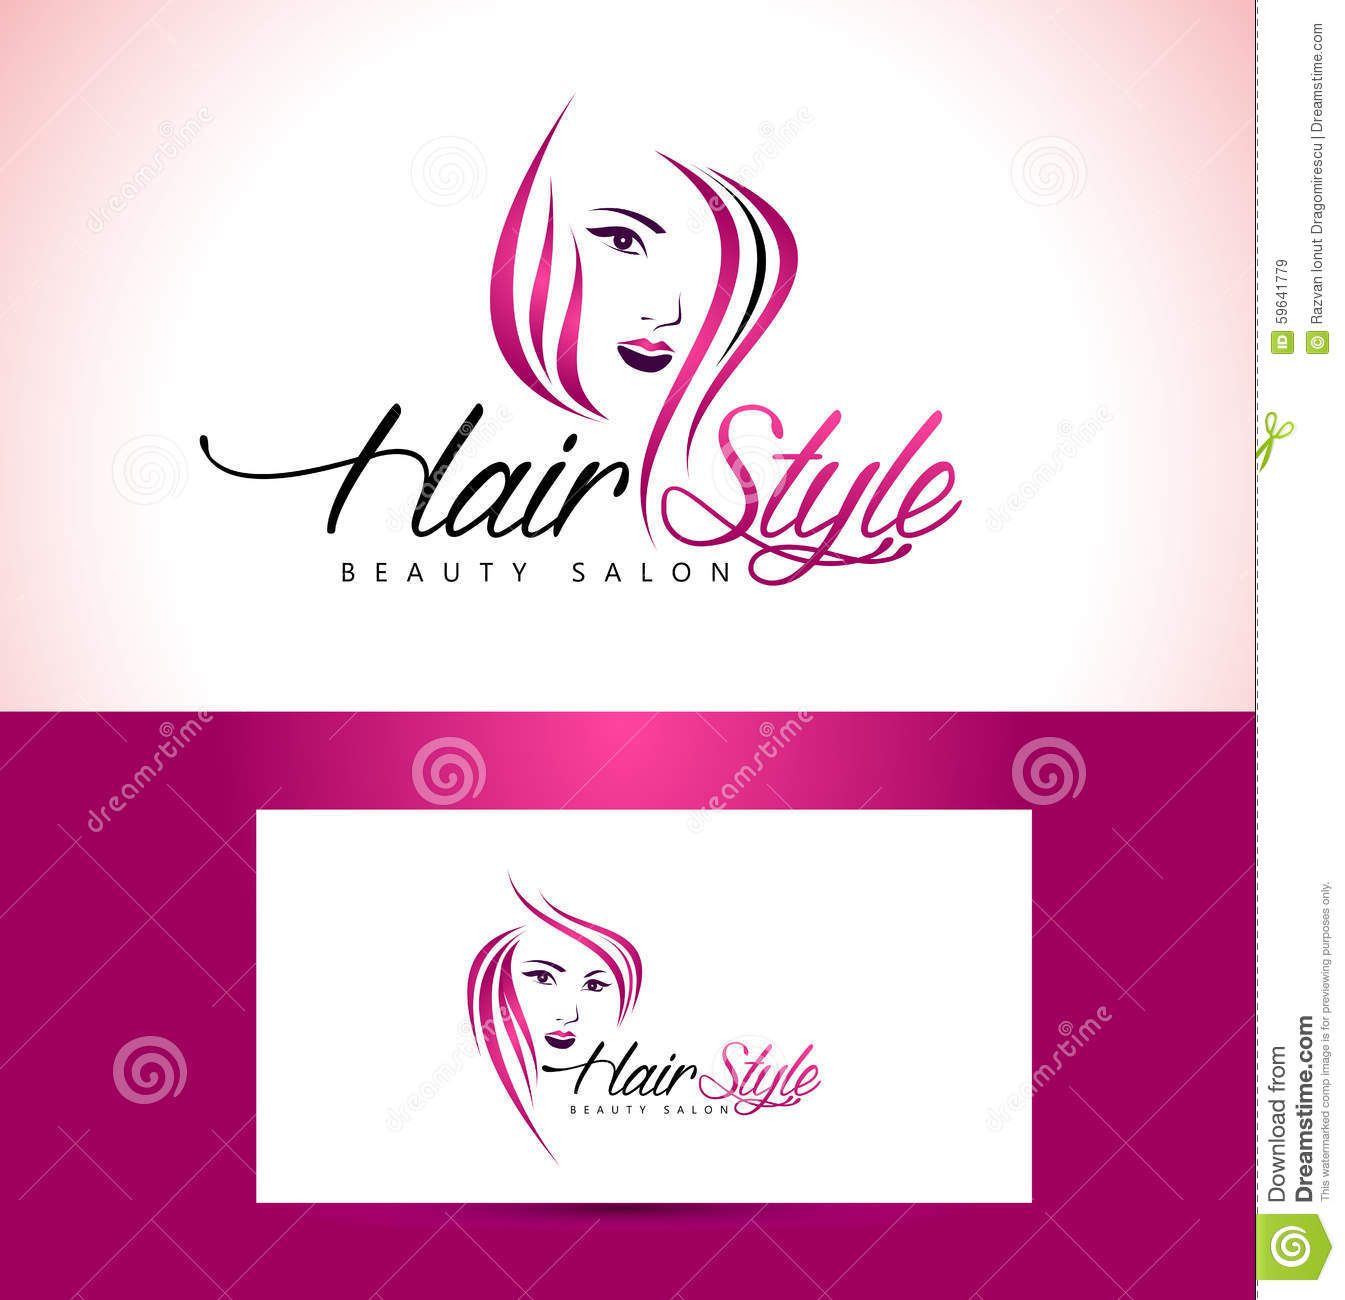 Salon logo design de coiffure illustration de vecteur - Logo salon de coiffure ...